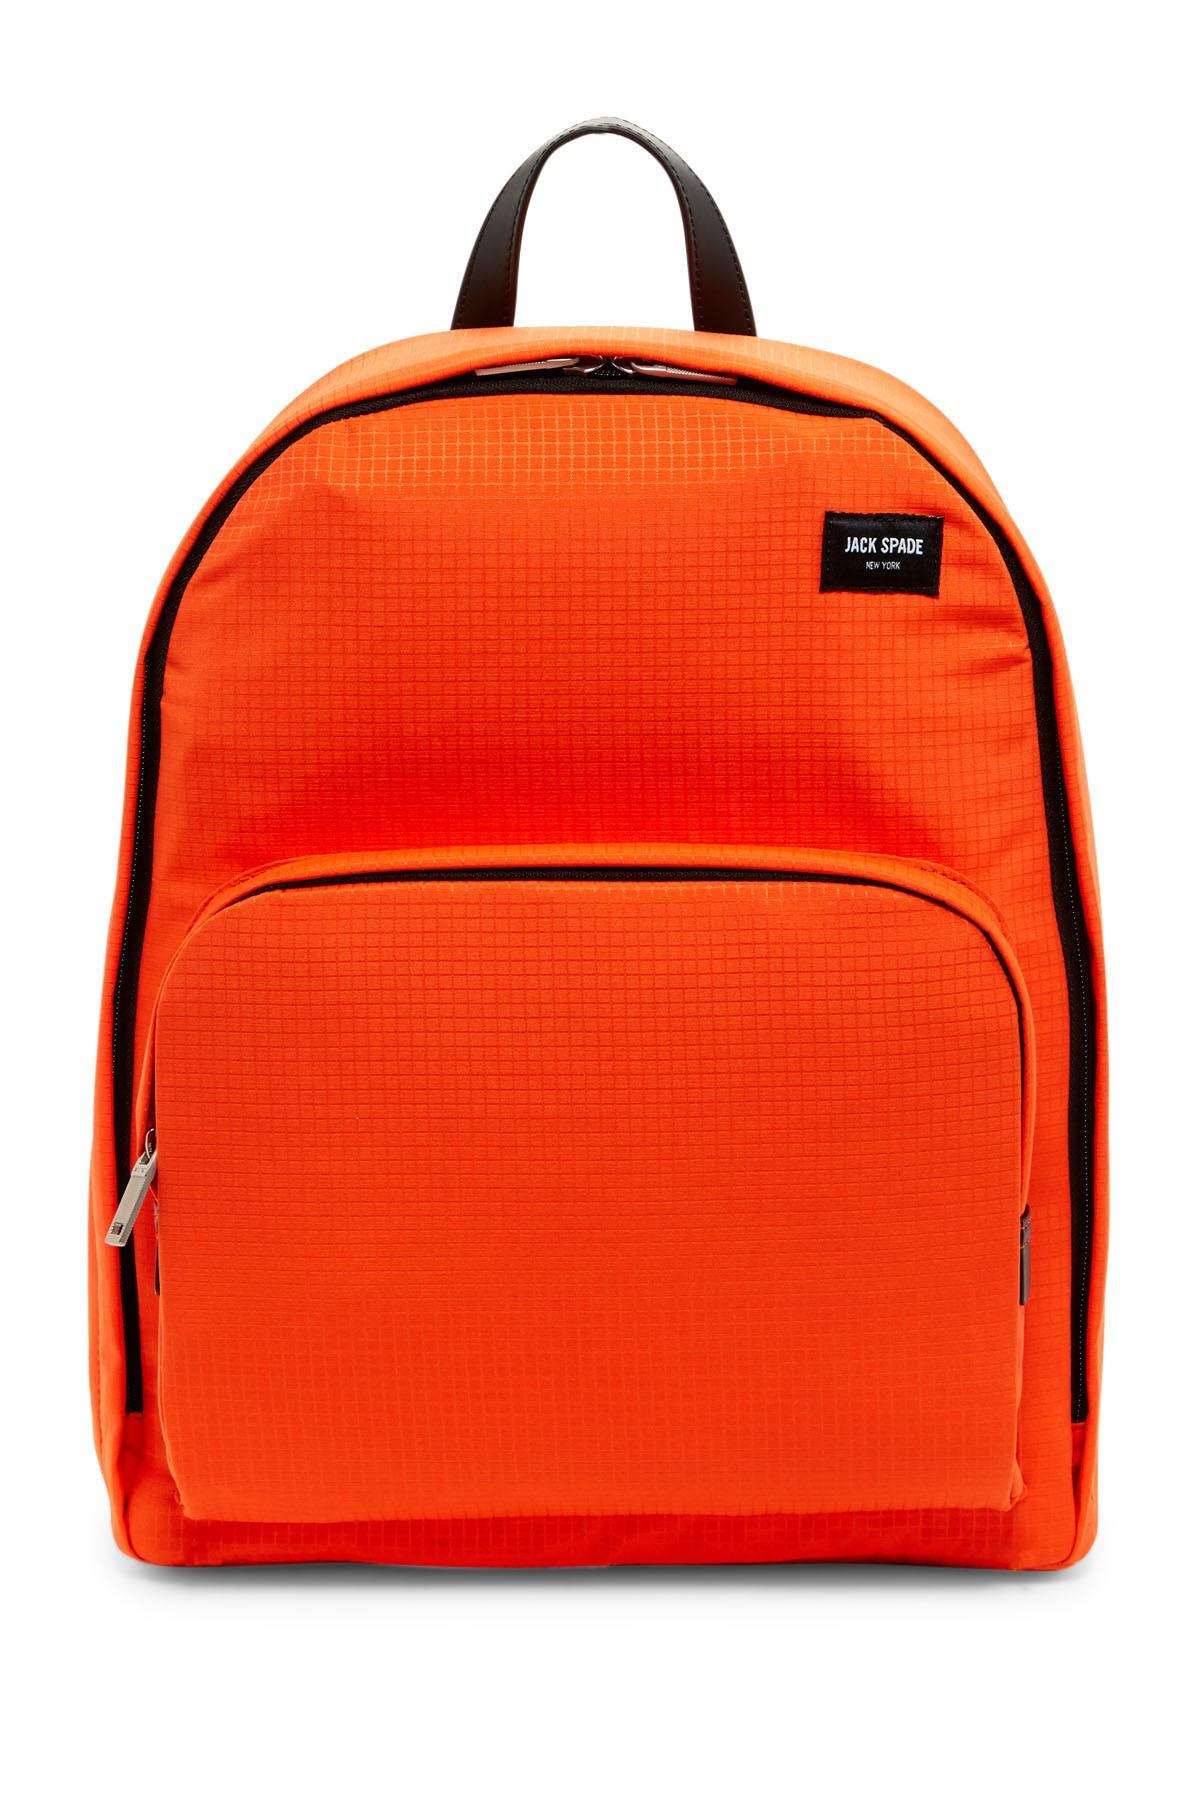 1b996876d Lyst - Jack Spade Checkered Leather Trim Backpack in Orange